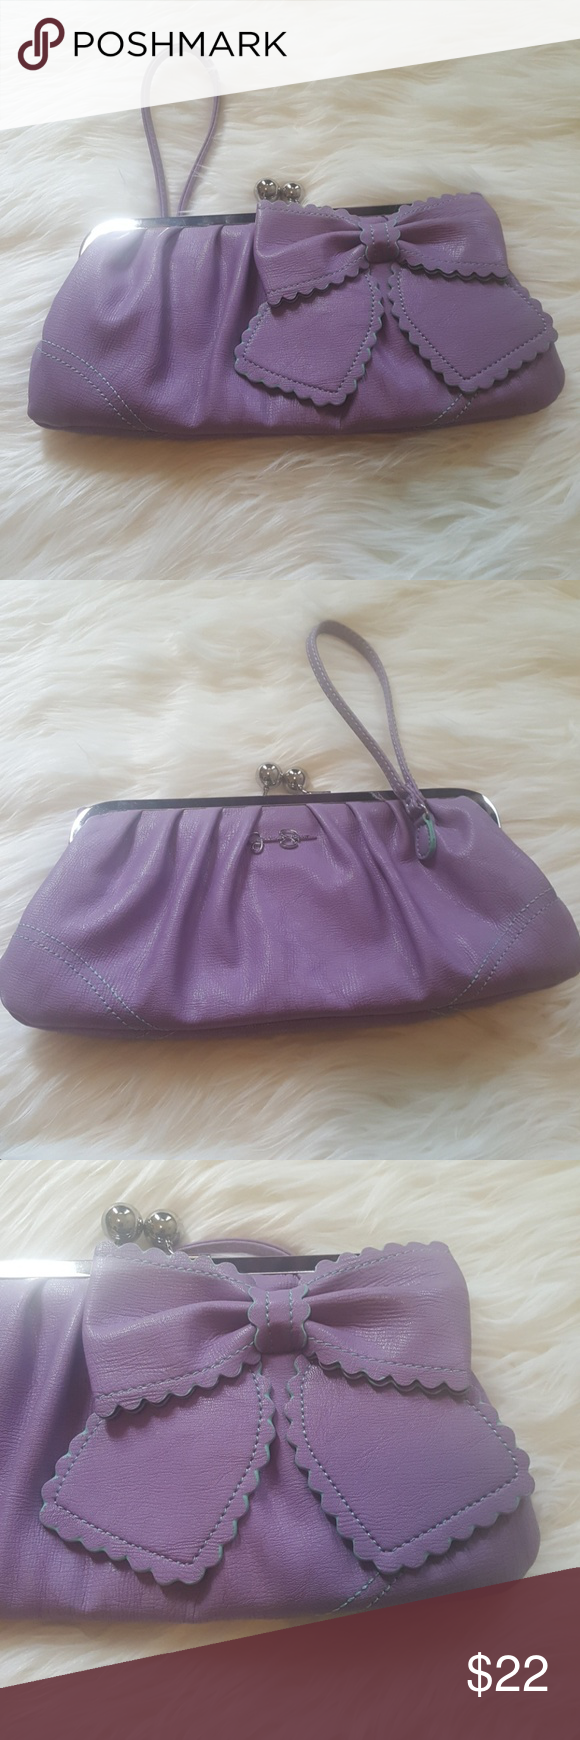 JS Clutch/Wristlet Cute JS clutch with a bow on the front. Jessica Simpson Bags Clutches & Wristlets